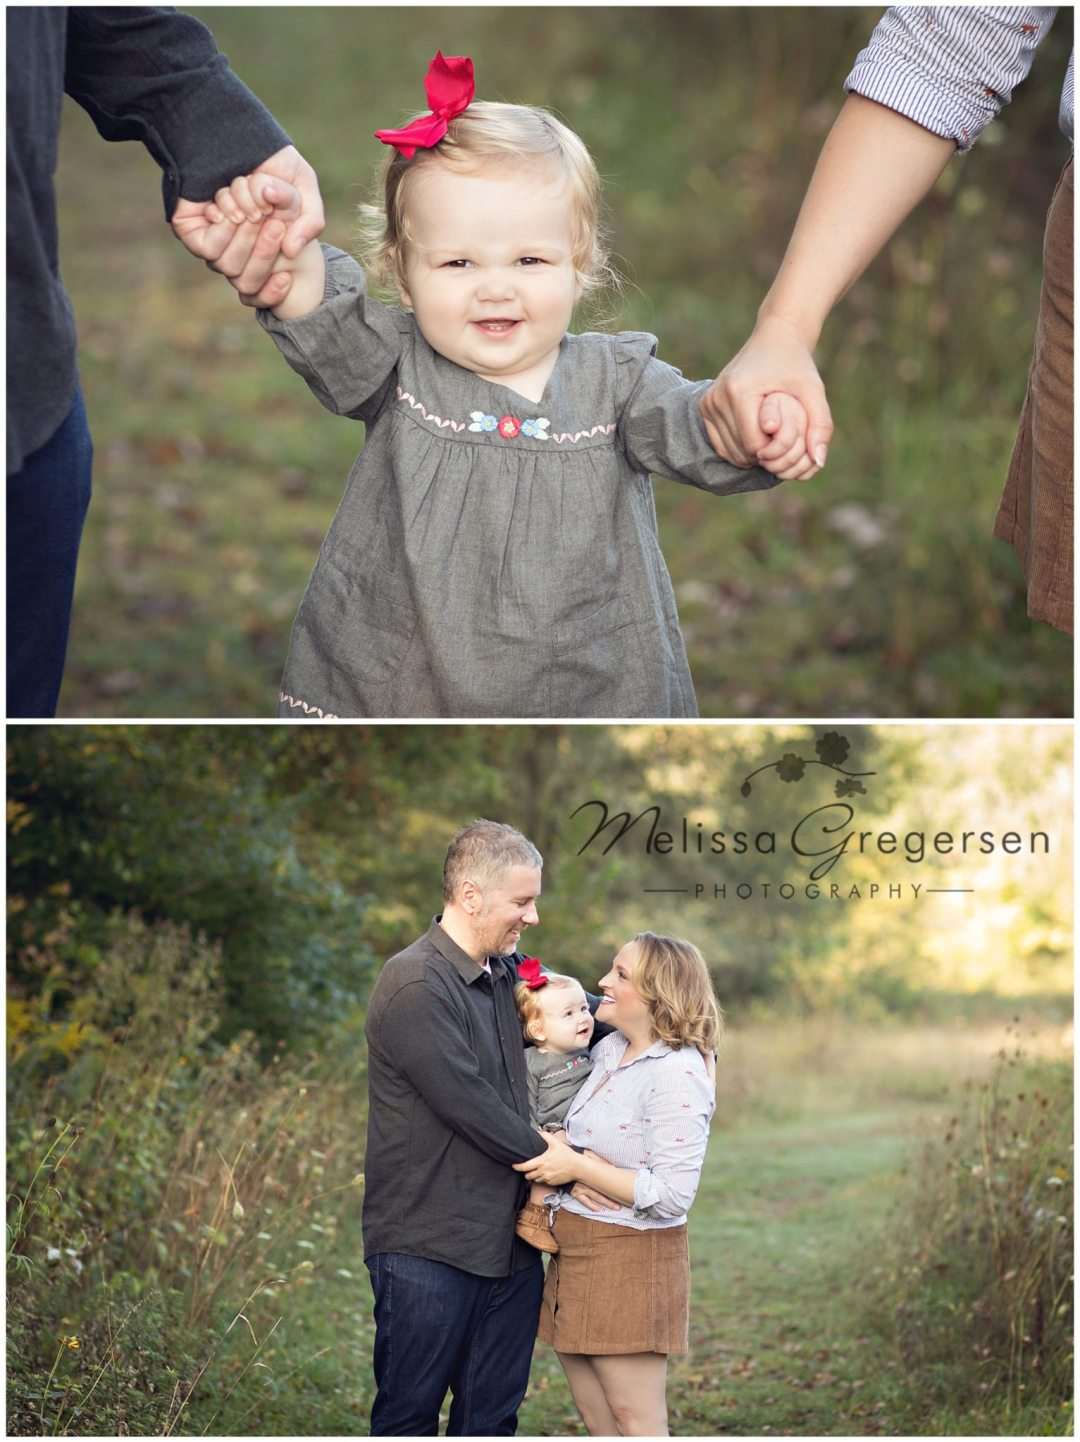 Matherne Family :: Kalamazoo Michigan Family Photographer - Gregersen Photography